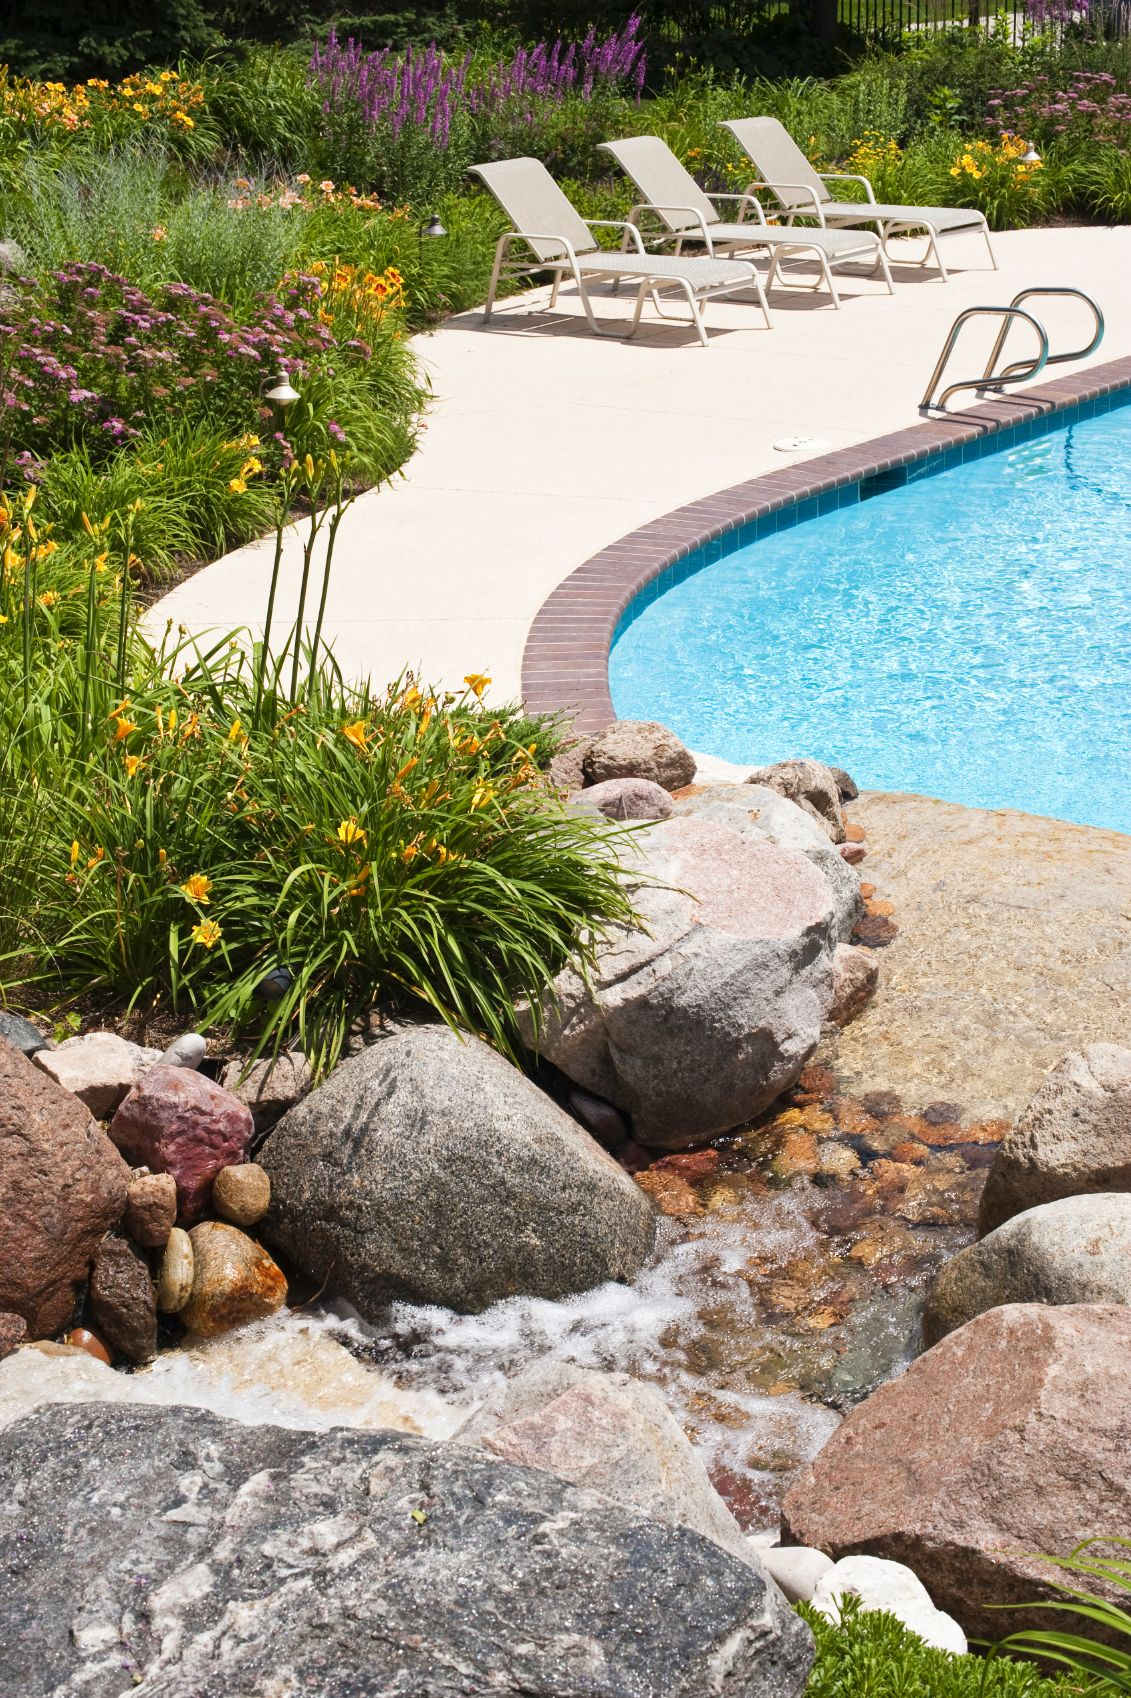 Filter your water through a faux waterfall that flows into the pool